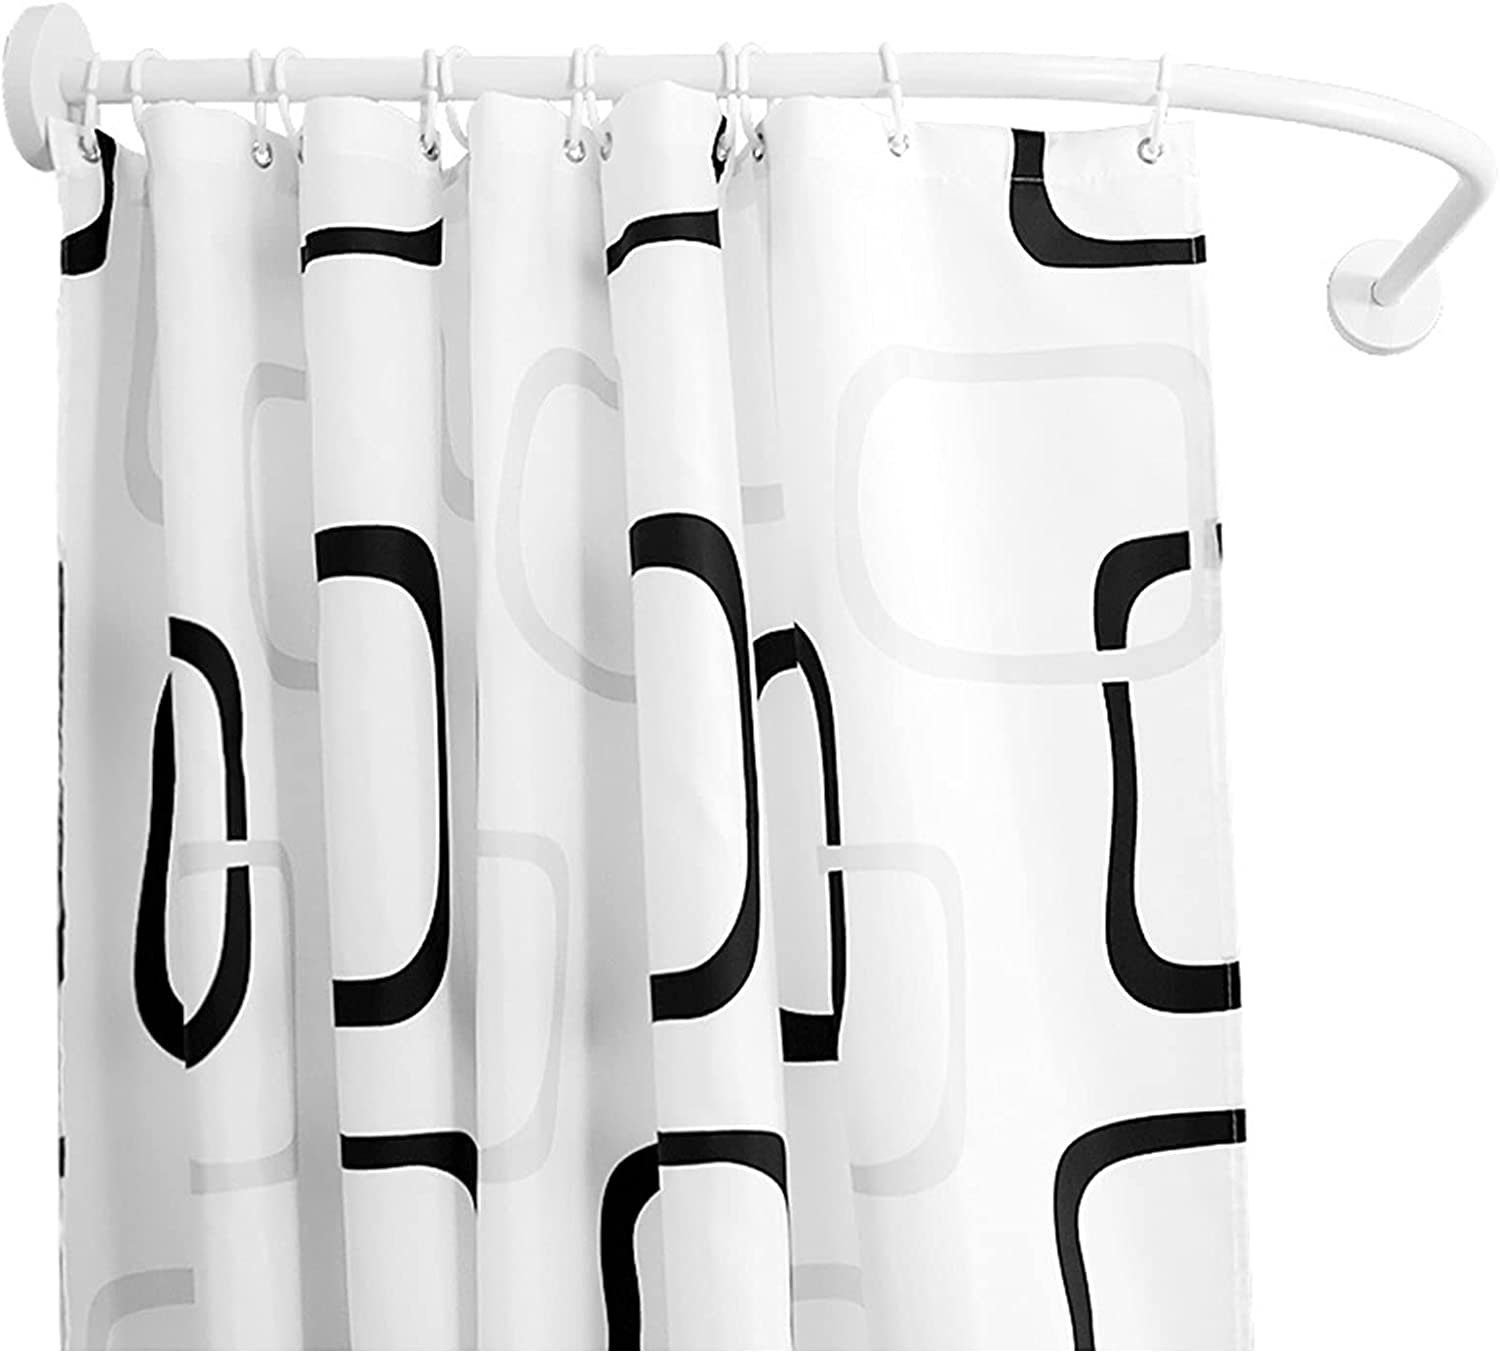 HBBY Max 81% OFF Selling and selling Curved Shower Rod Tension Mount Shape Adjustable L